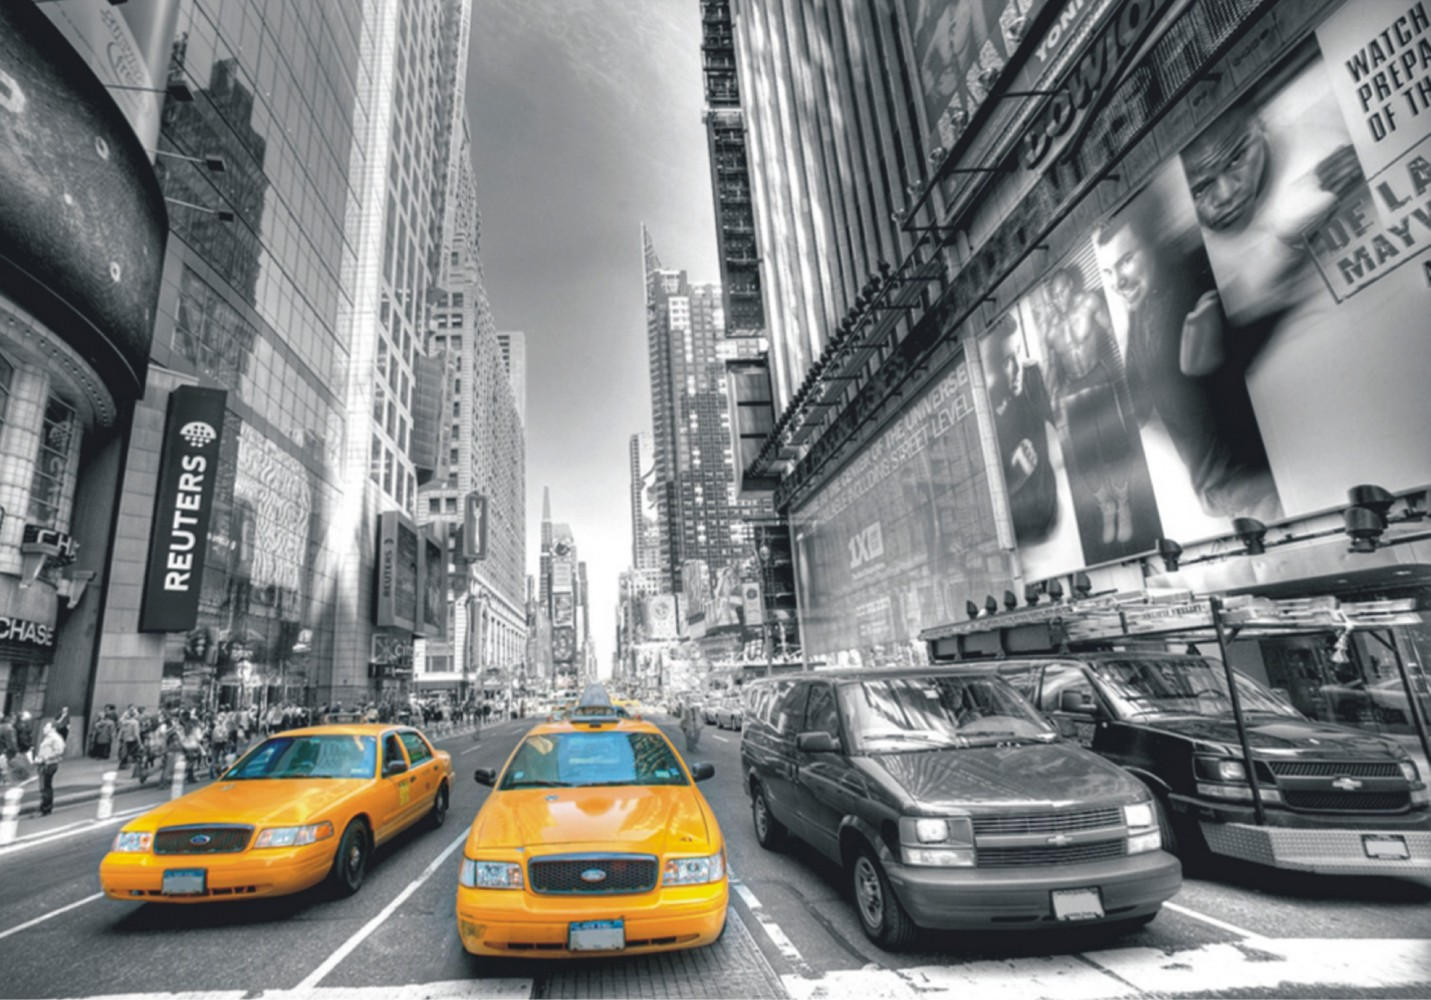 fototapete tapete new york taxi yellow cap manhattan nyc foto 360 cm x 270 cm. Black Bedroom Furniture Sets. Home Design Ideas